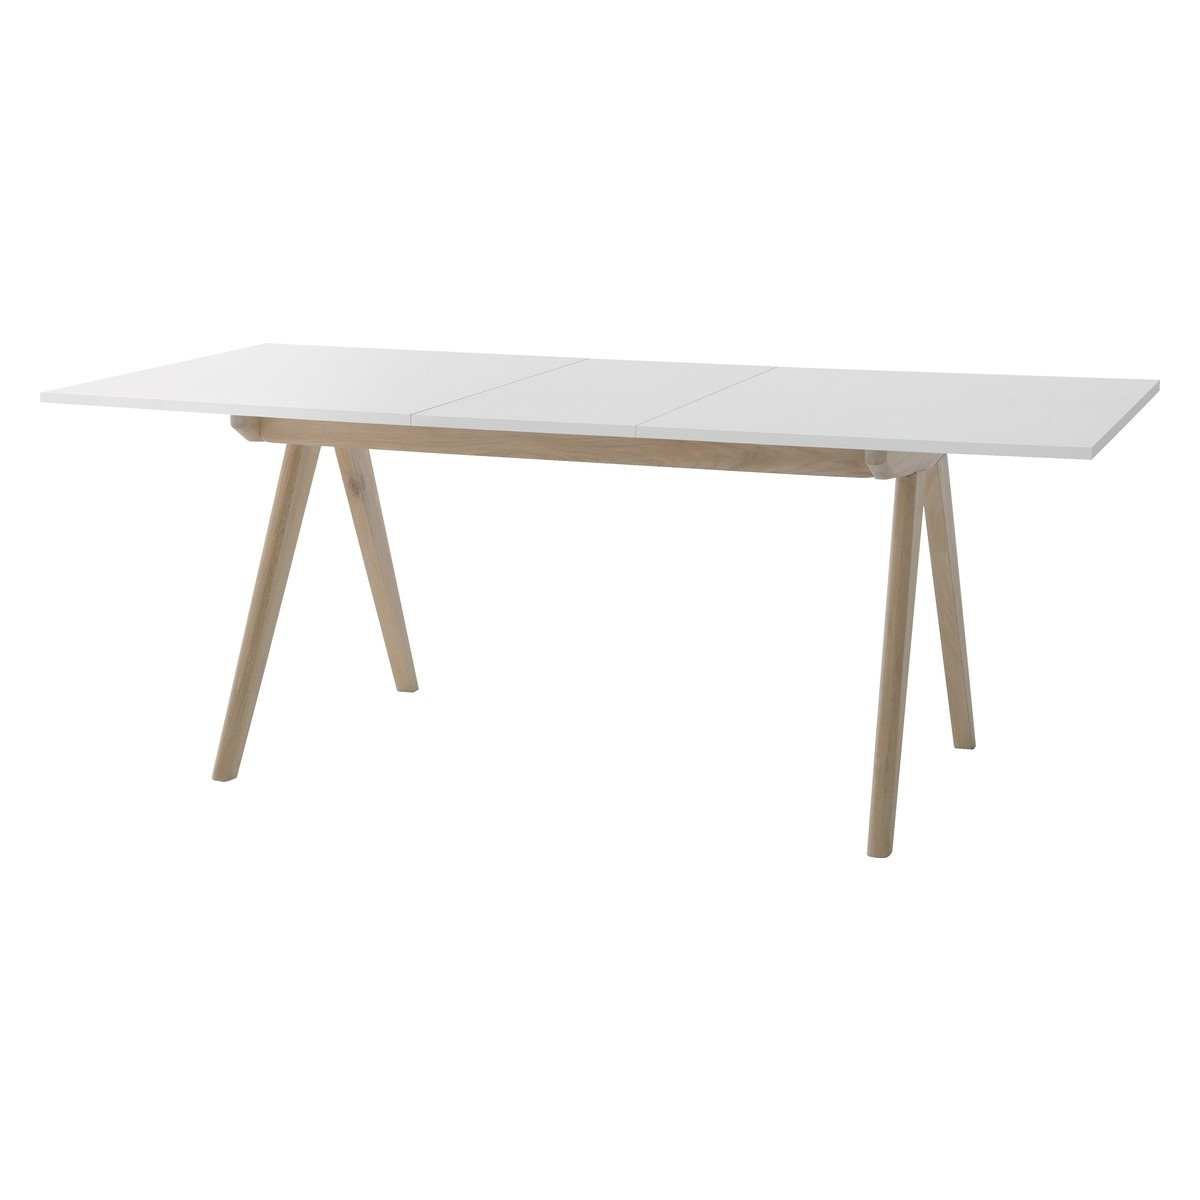 Popular White Extending Dining Tables And Chairs With Regard To Jerry 4 8 Seat White Extending Dining Table (View 7 of 25)